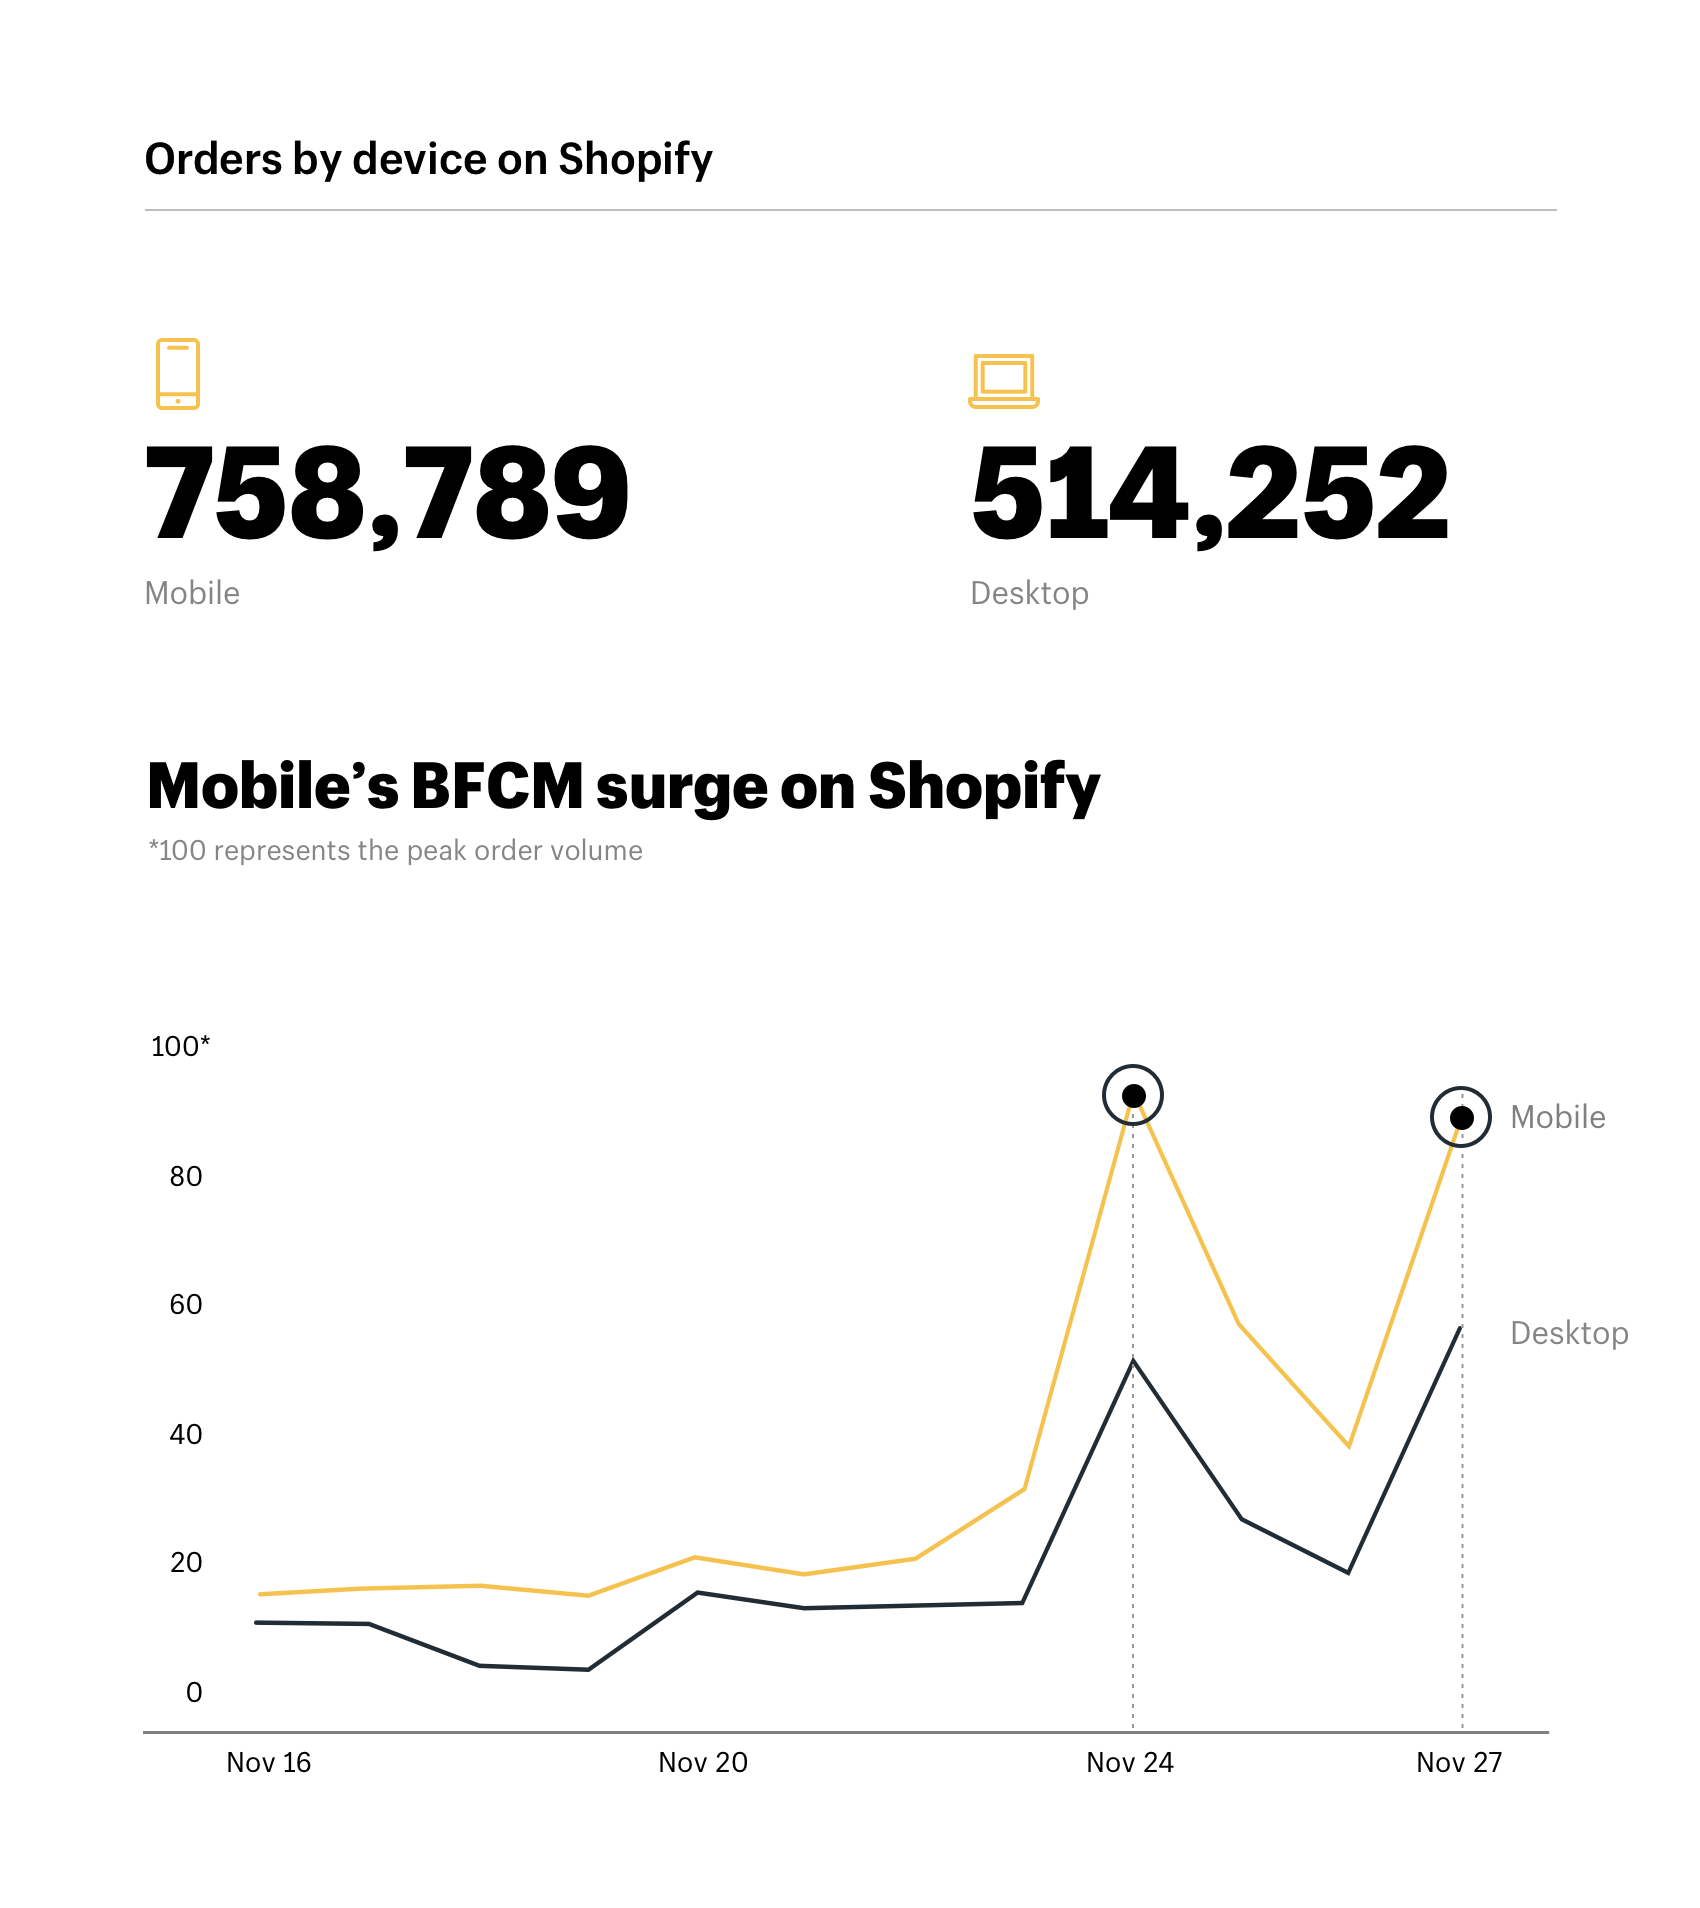 Orders by device during Black Friday Cyber Monday on Shopify